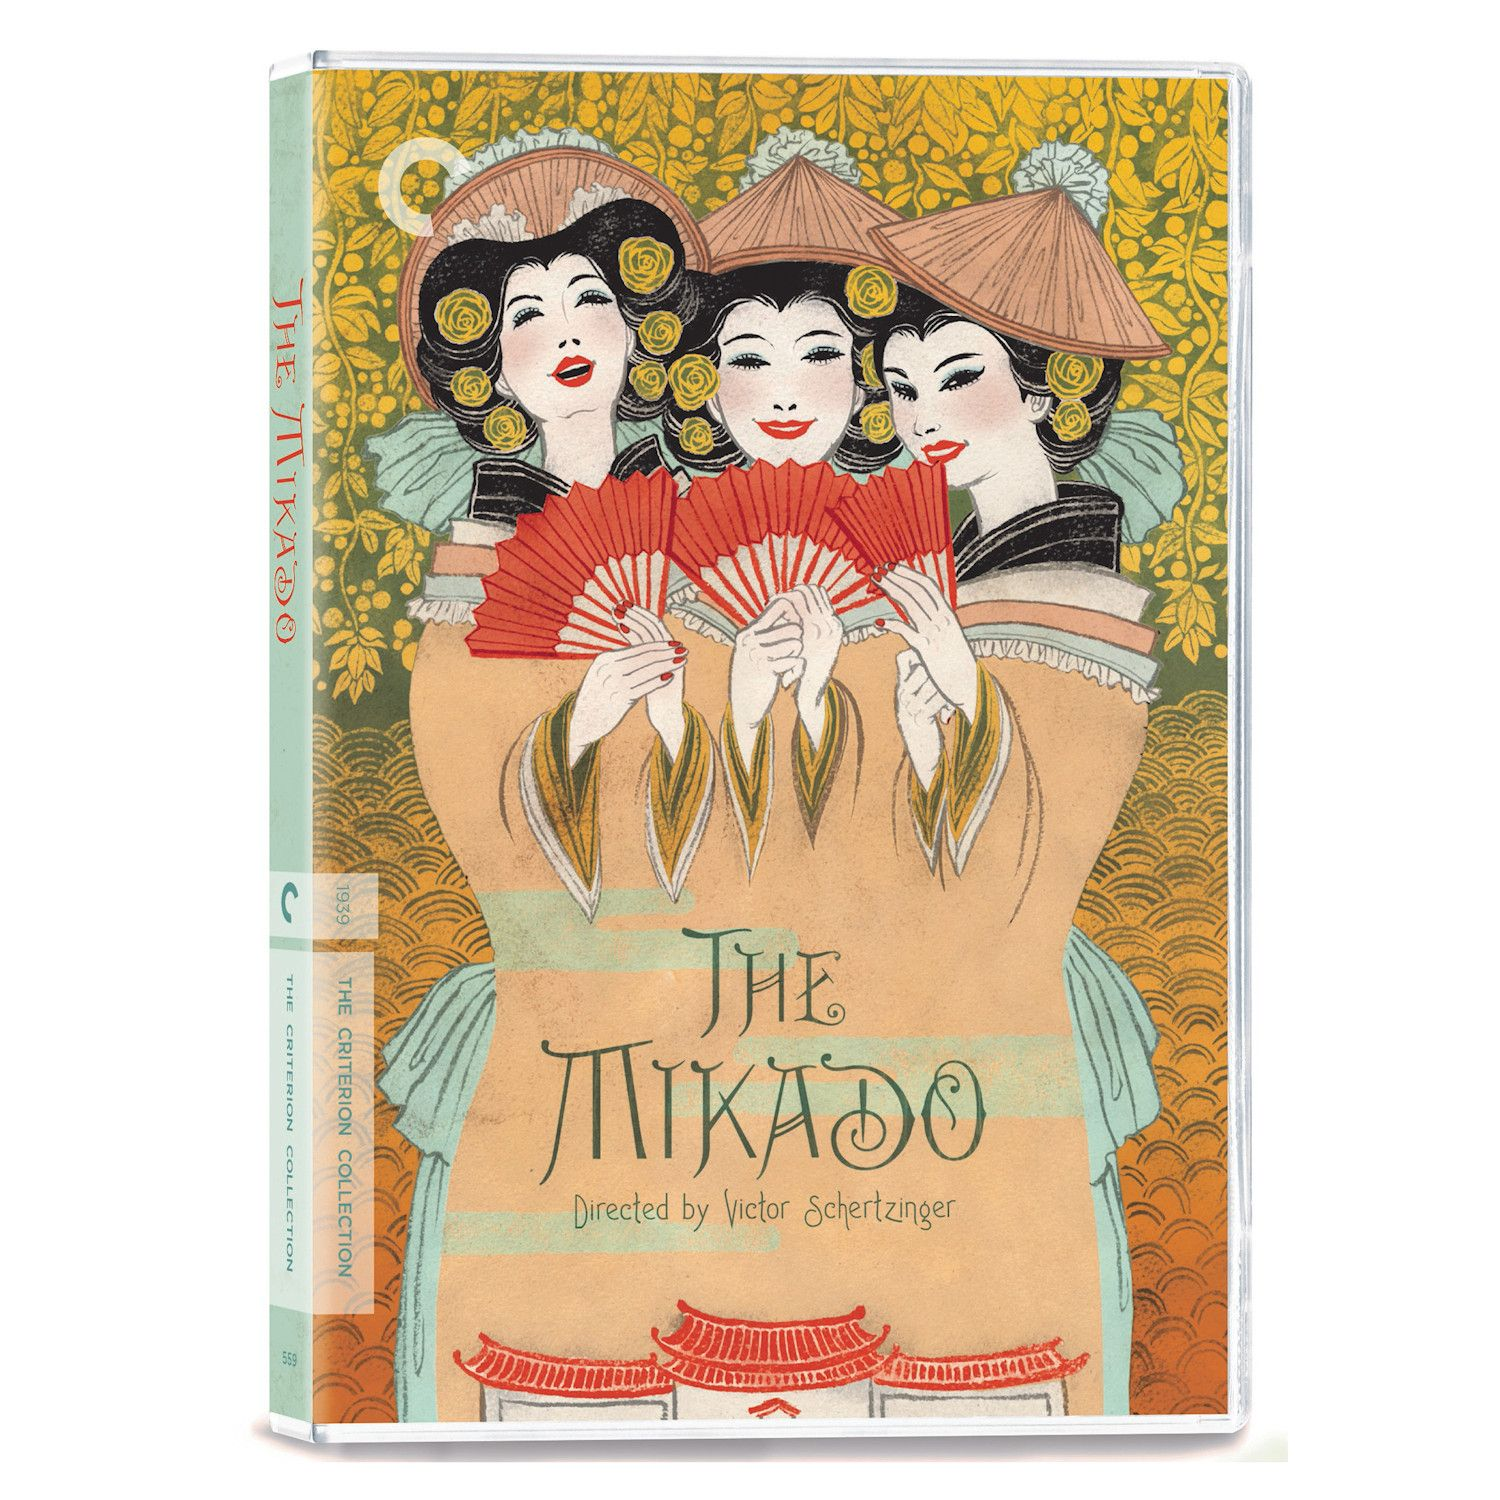 The Criterion Collection: The Mikado Dvd/blu-ray - DVD #bluray